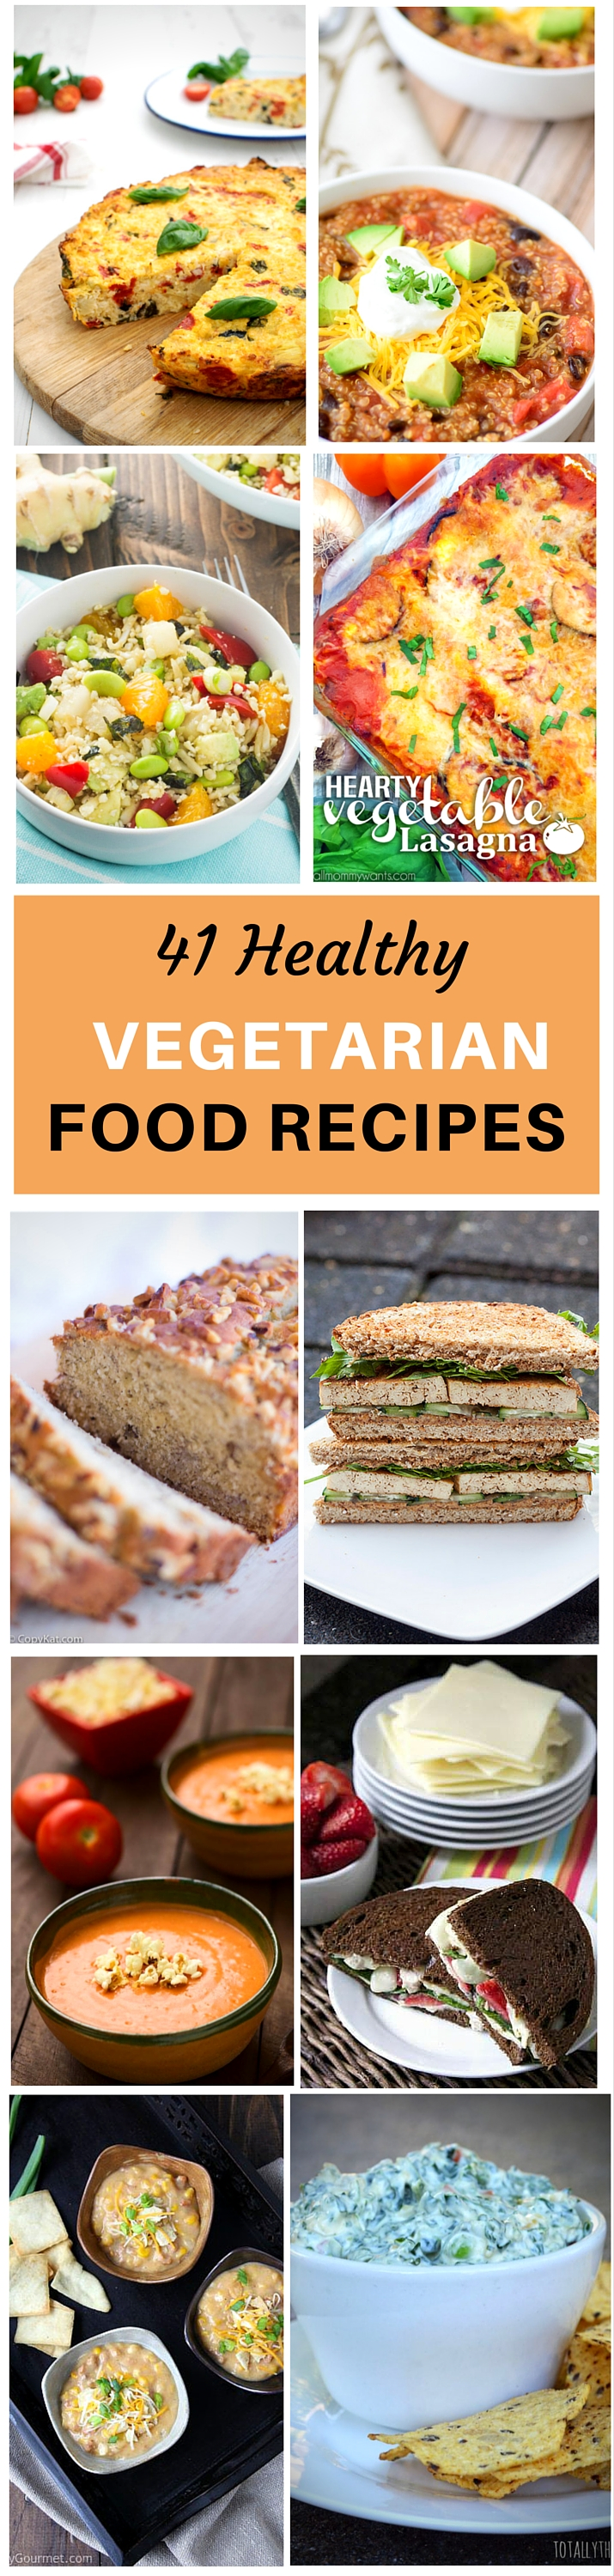 41 Healthy Vegetarian Recipes